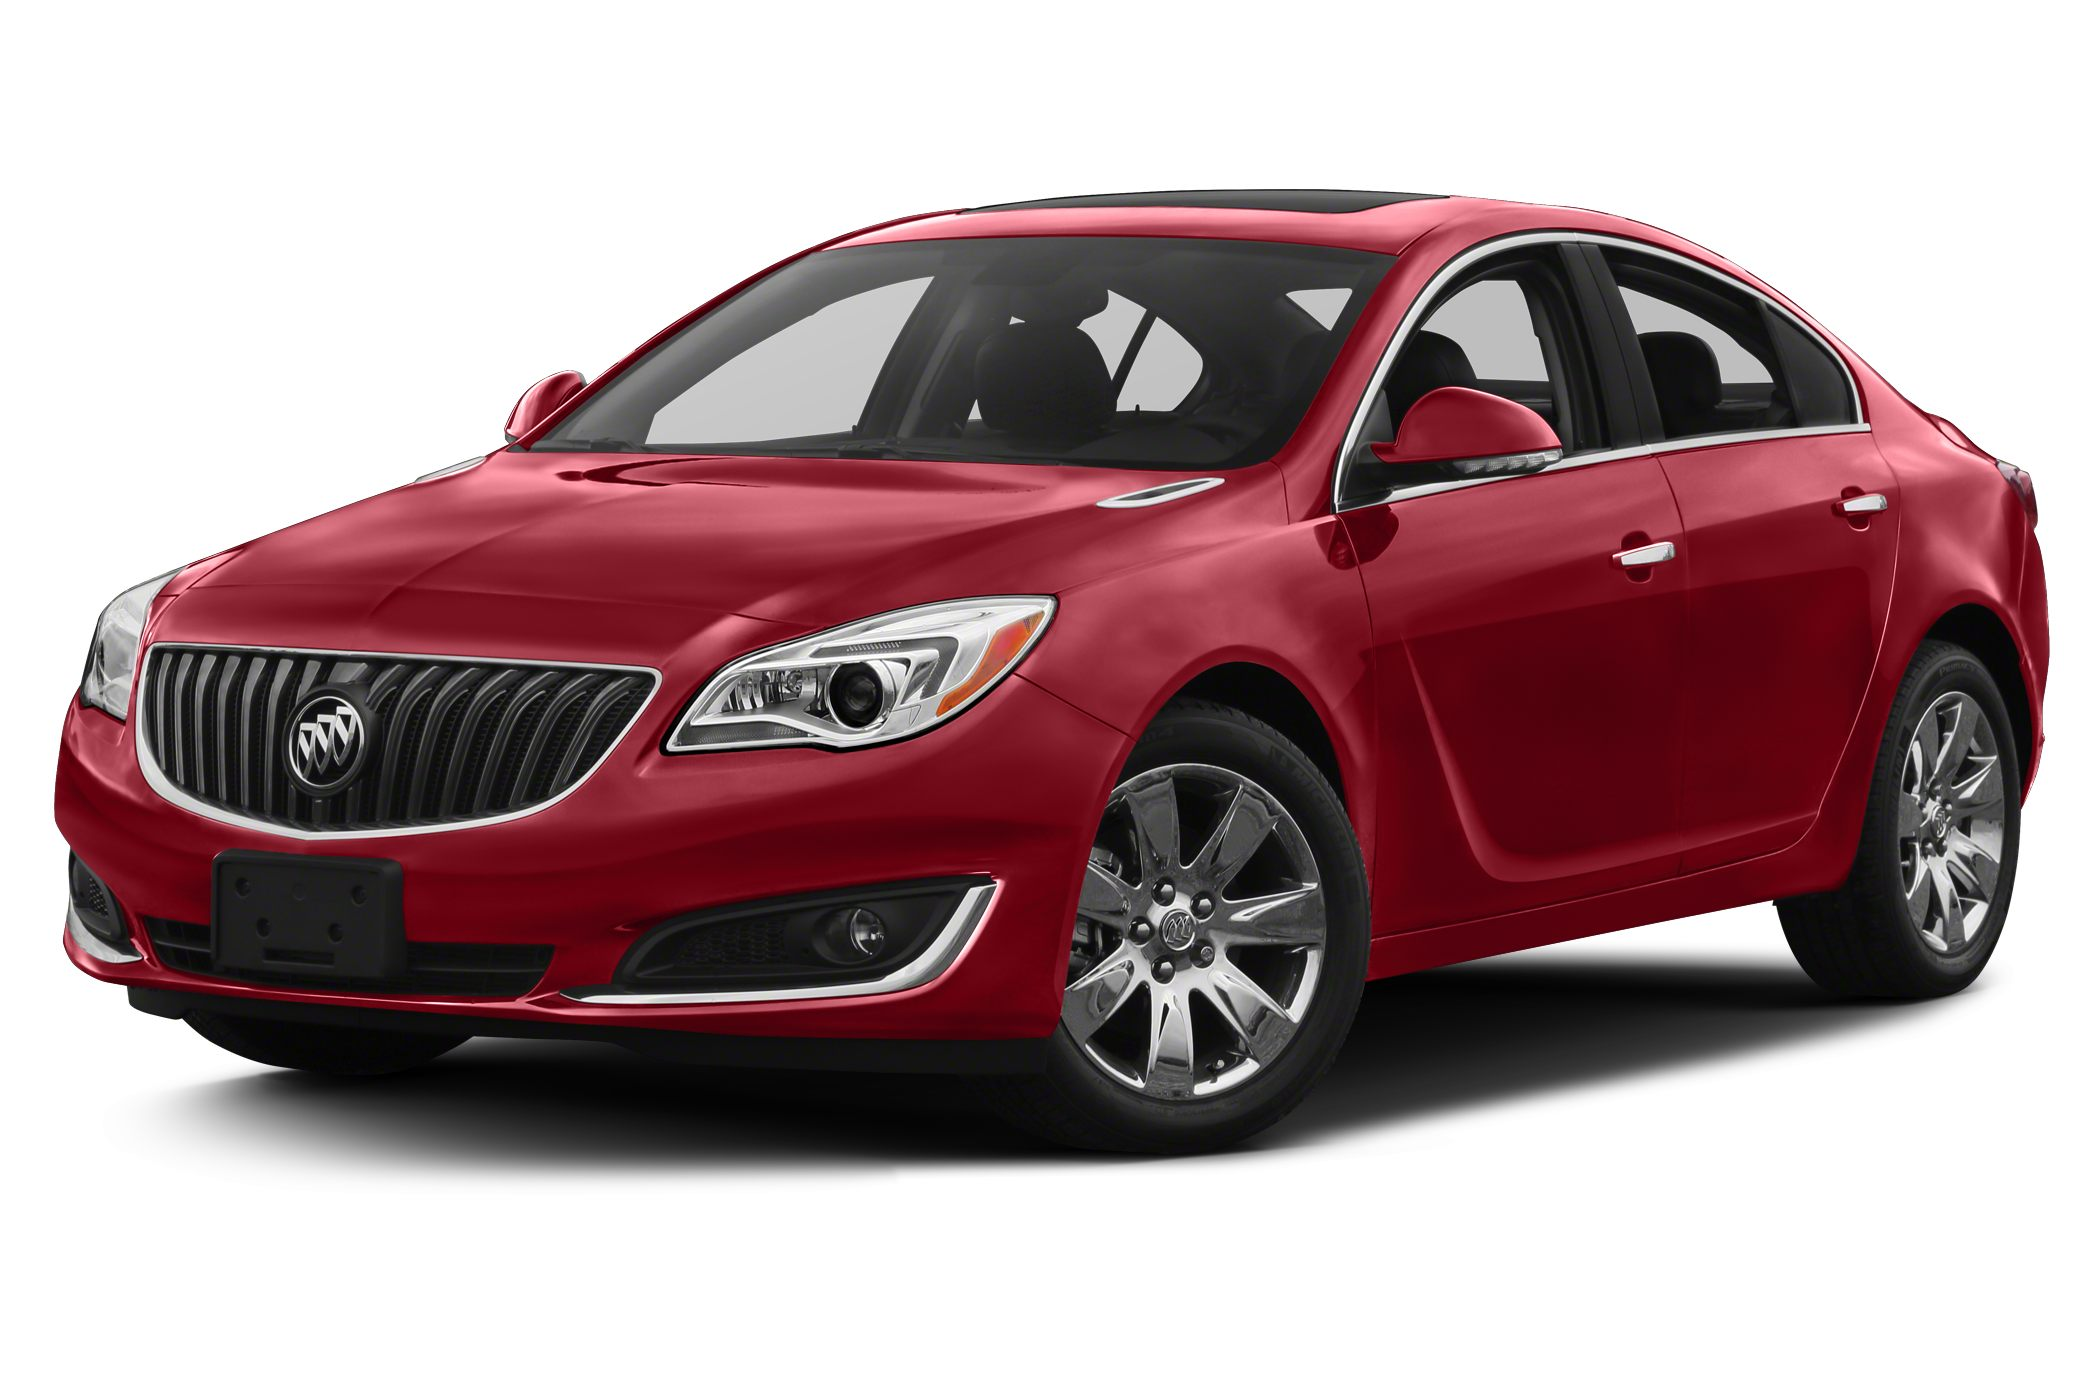 2014 Buick Regal Turbo Premium I Regal Turboe-Assist Premium 1 4D Sedan 20L 4-Cylinder DGI DOH